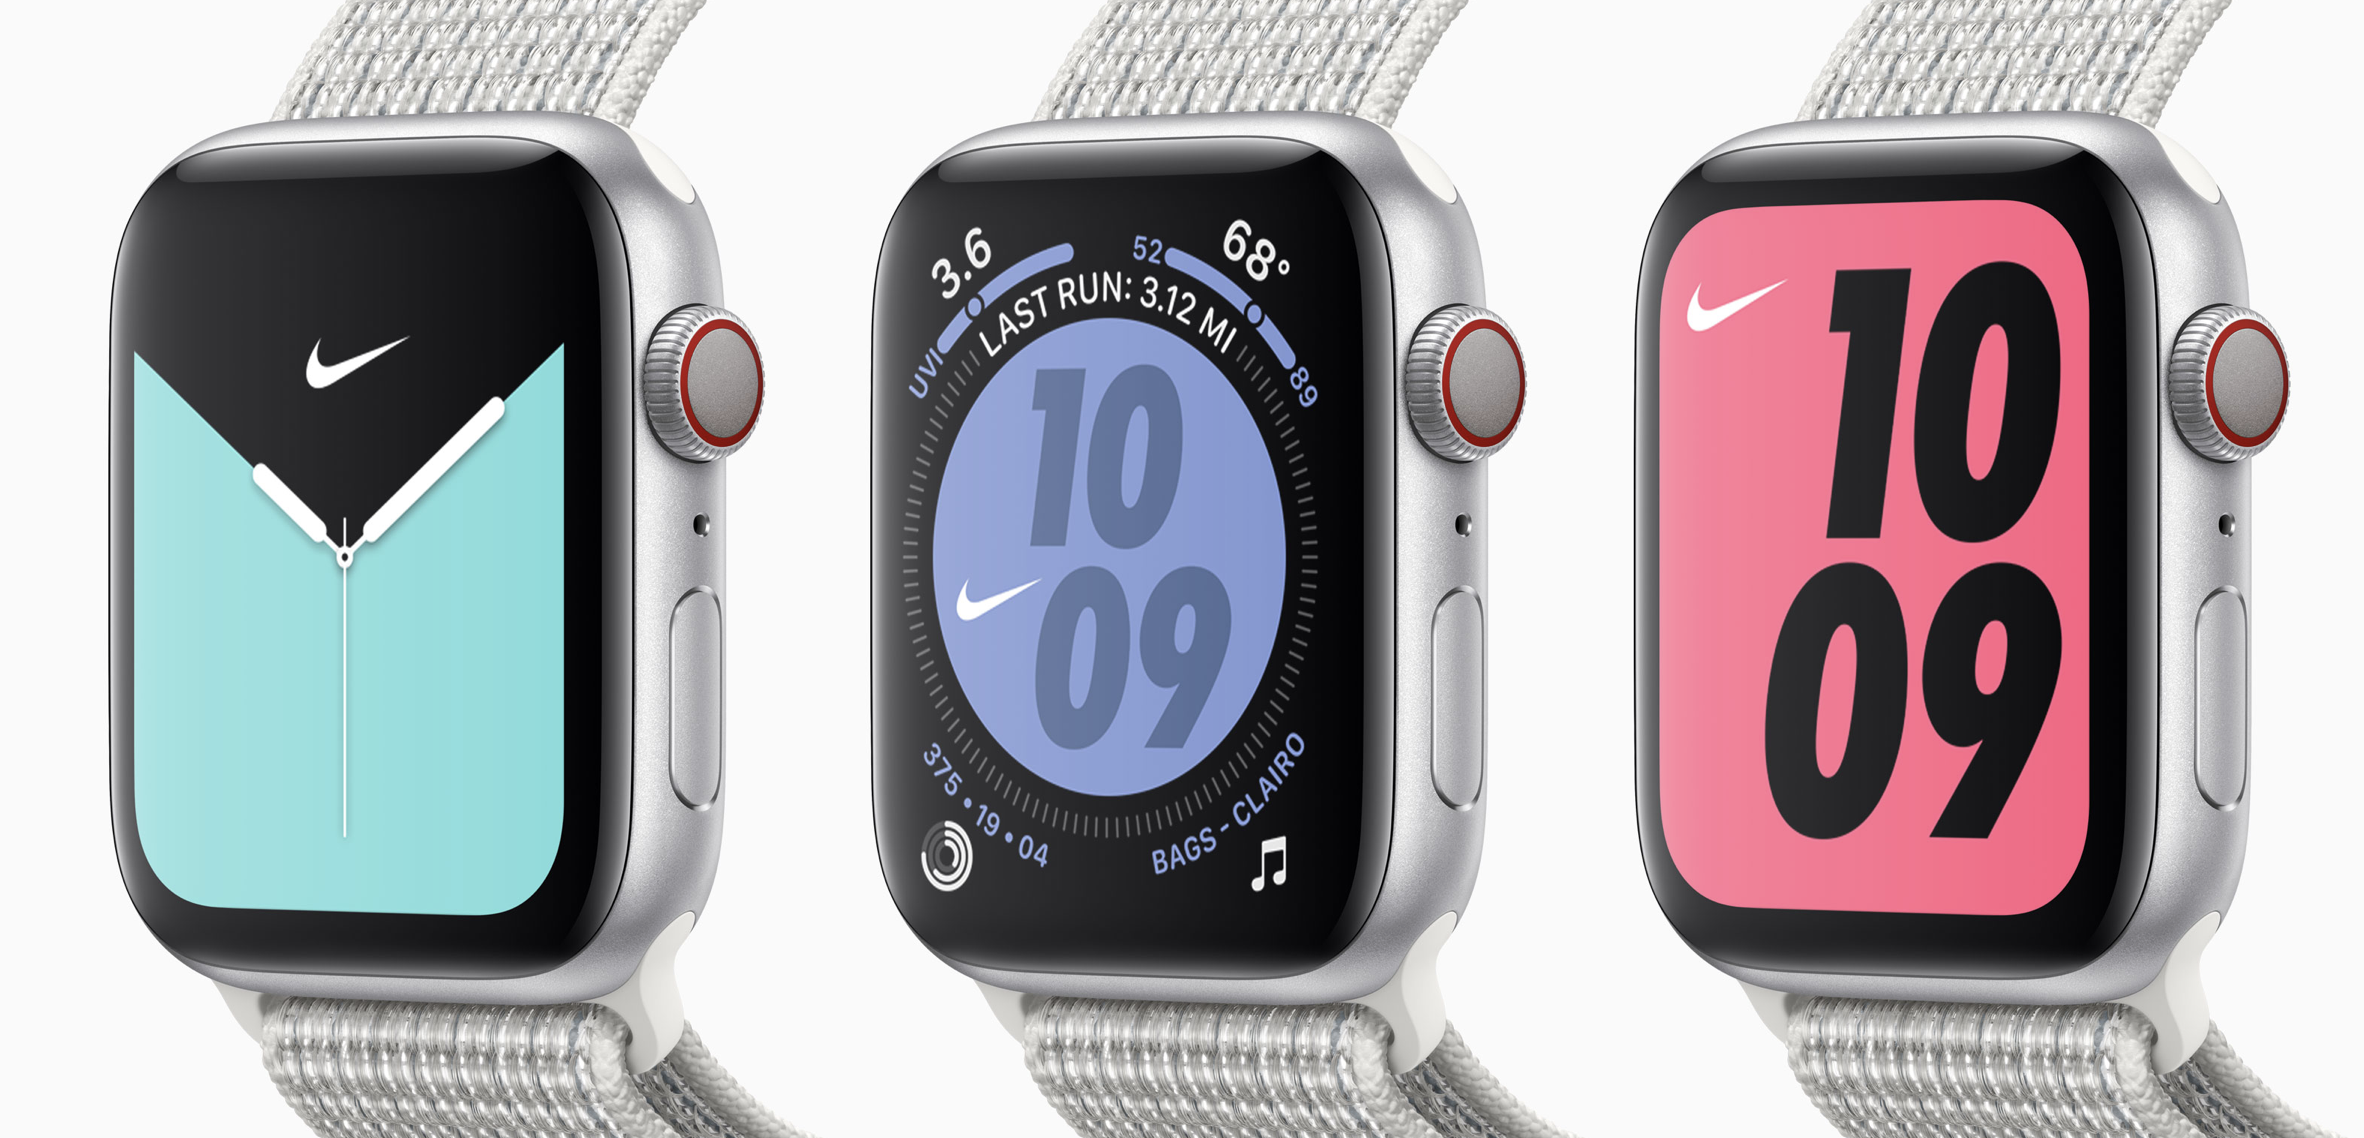 atributo Corta vida Comedia de enredo  Apple Watch Nike hits stores today, some models backordered until December  - 9to5Mac